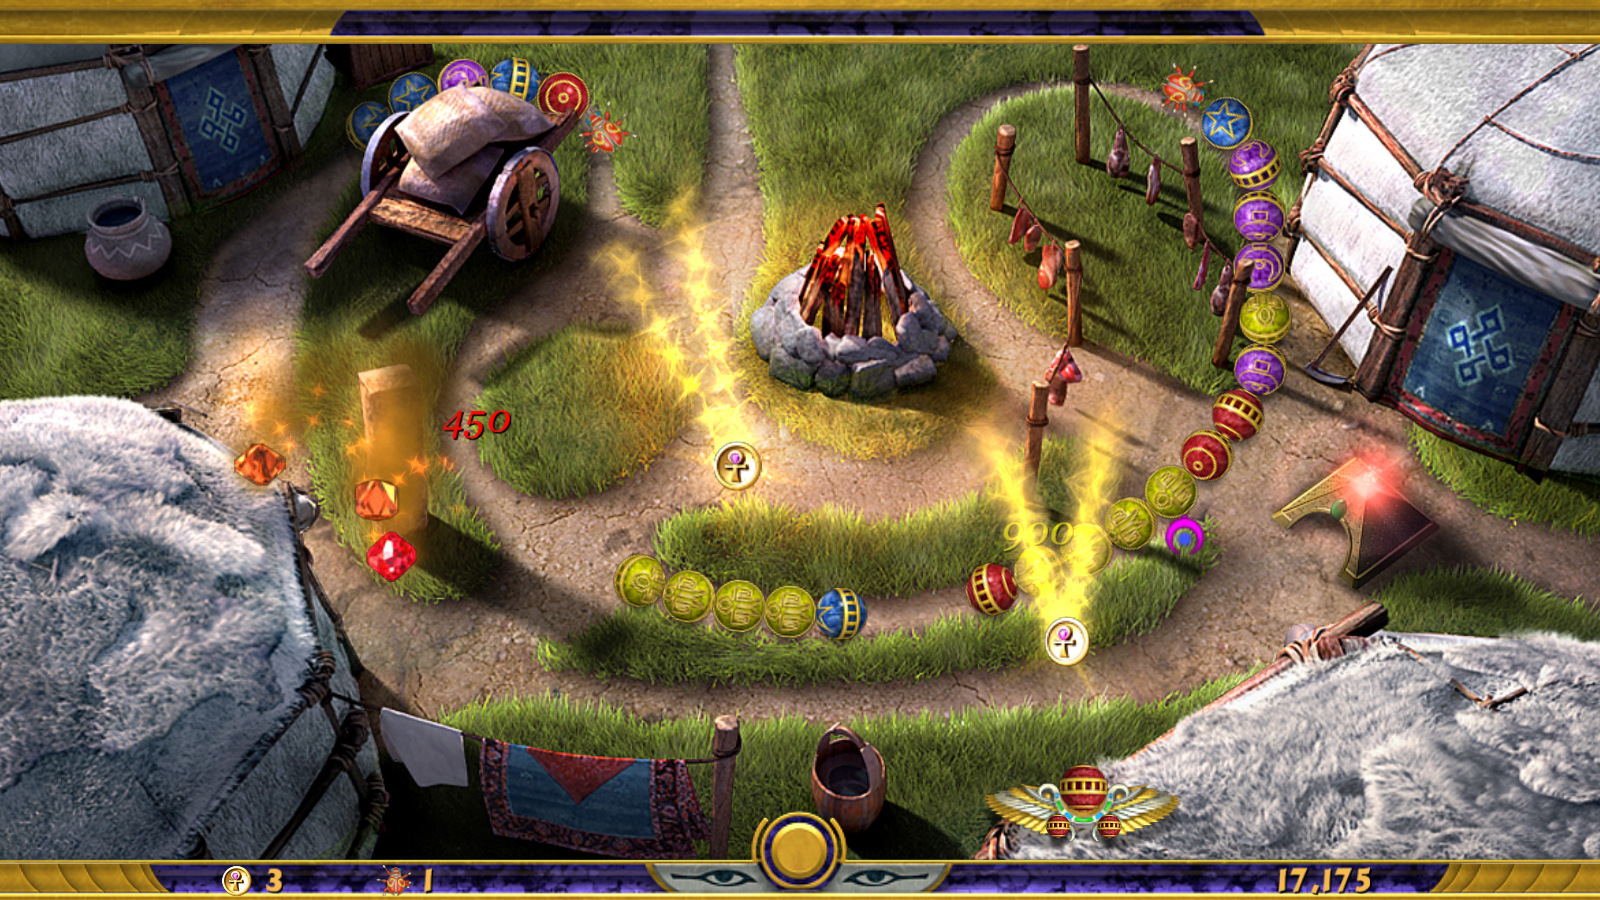 Download Luxor Quest For The Afterlife Full PC Game